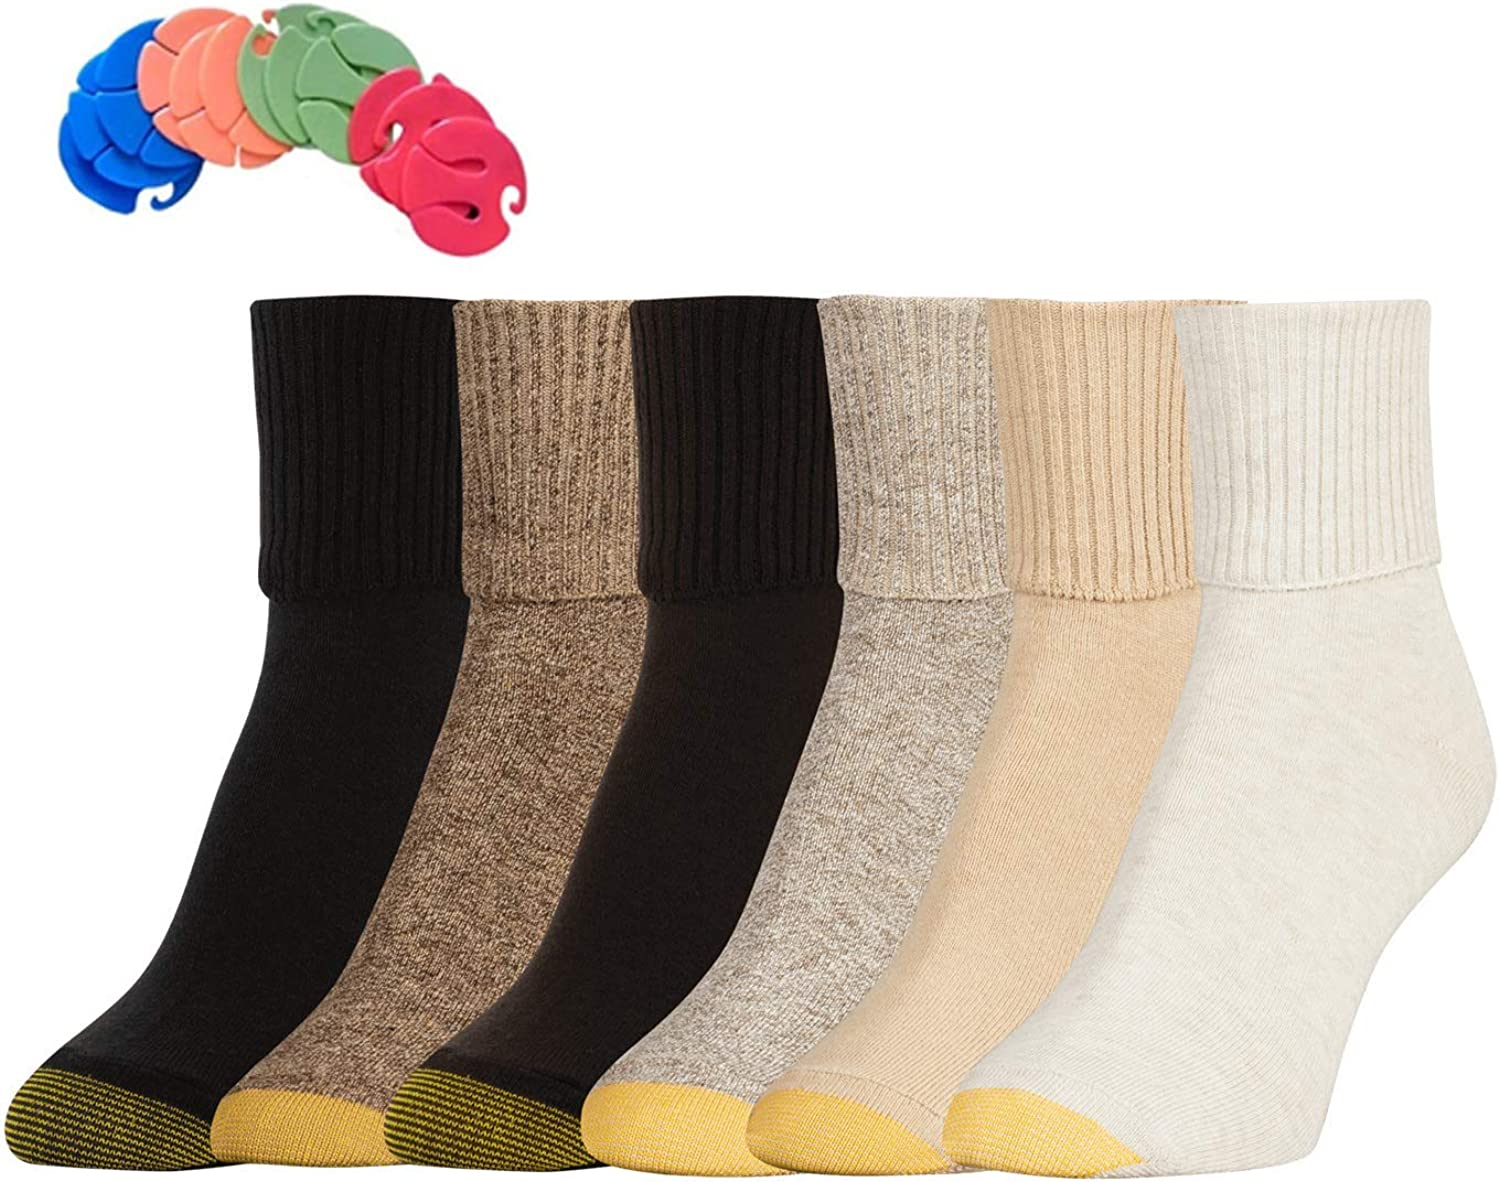 gold Toe Women's 6 Pack Turn Cuff Socks   6 Free Sock Clips Included ( 5 Value)